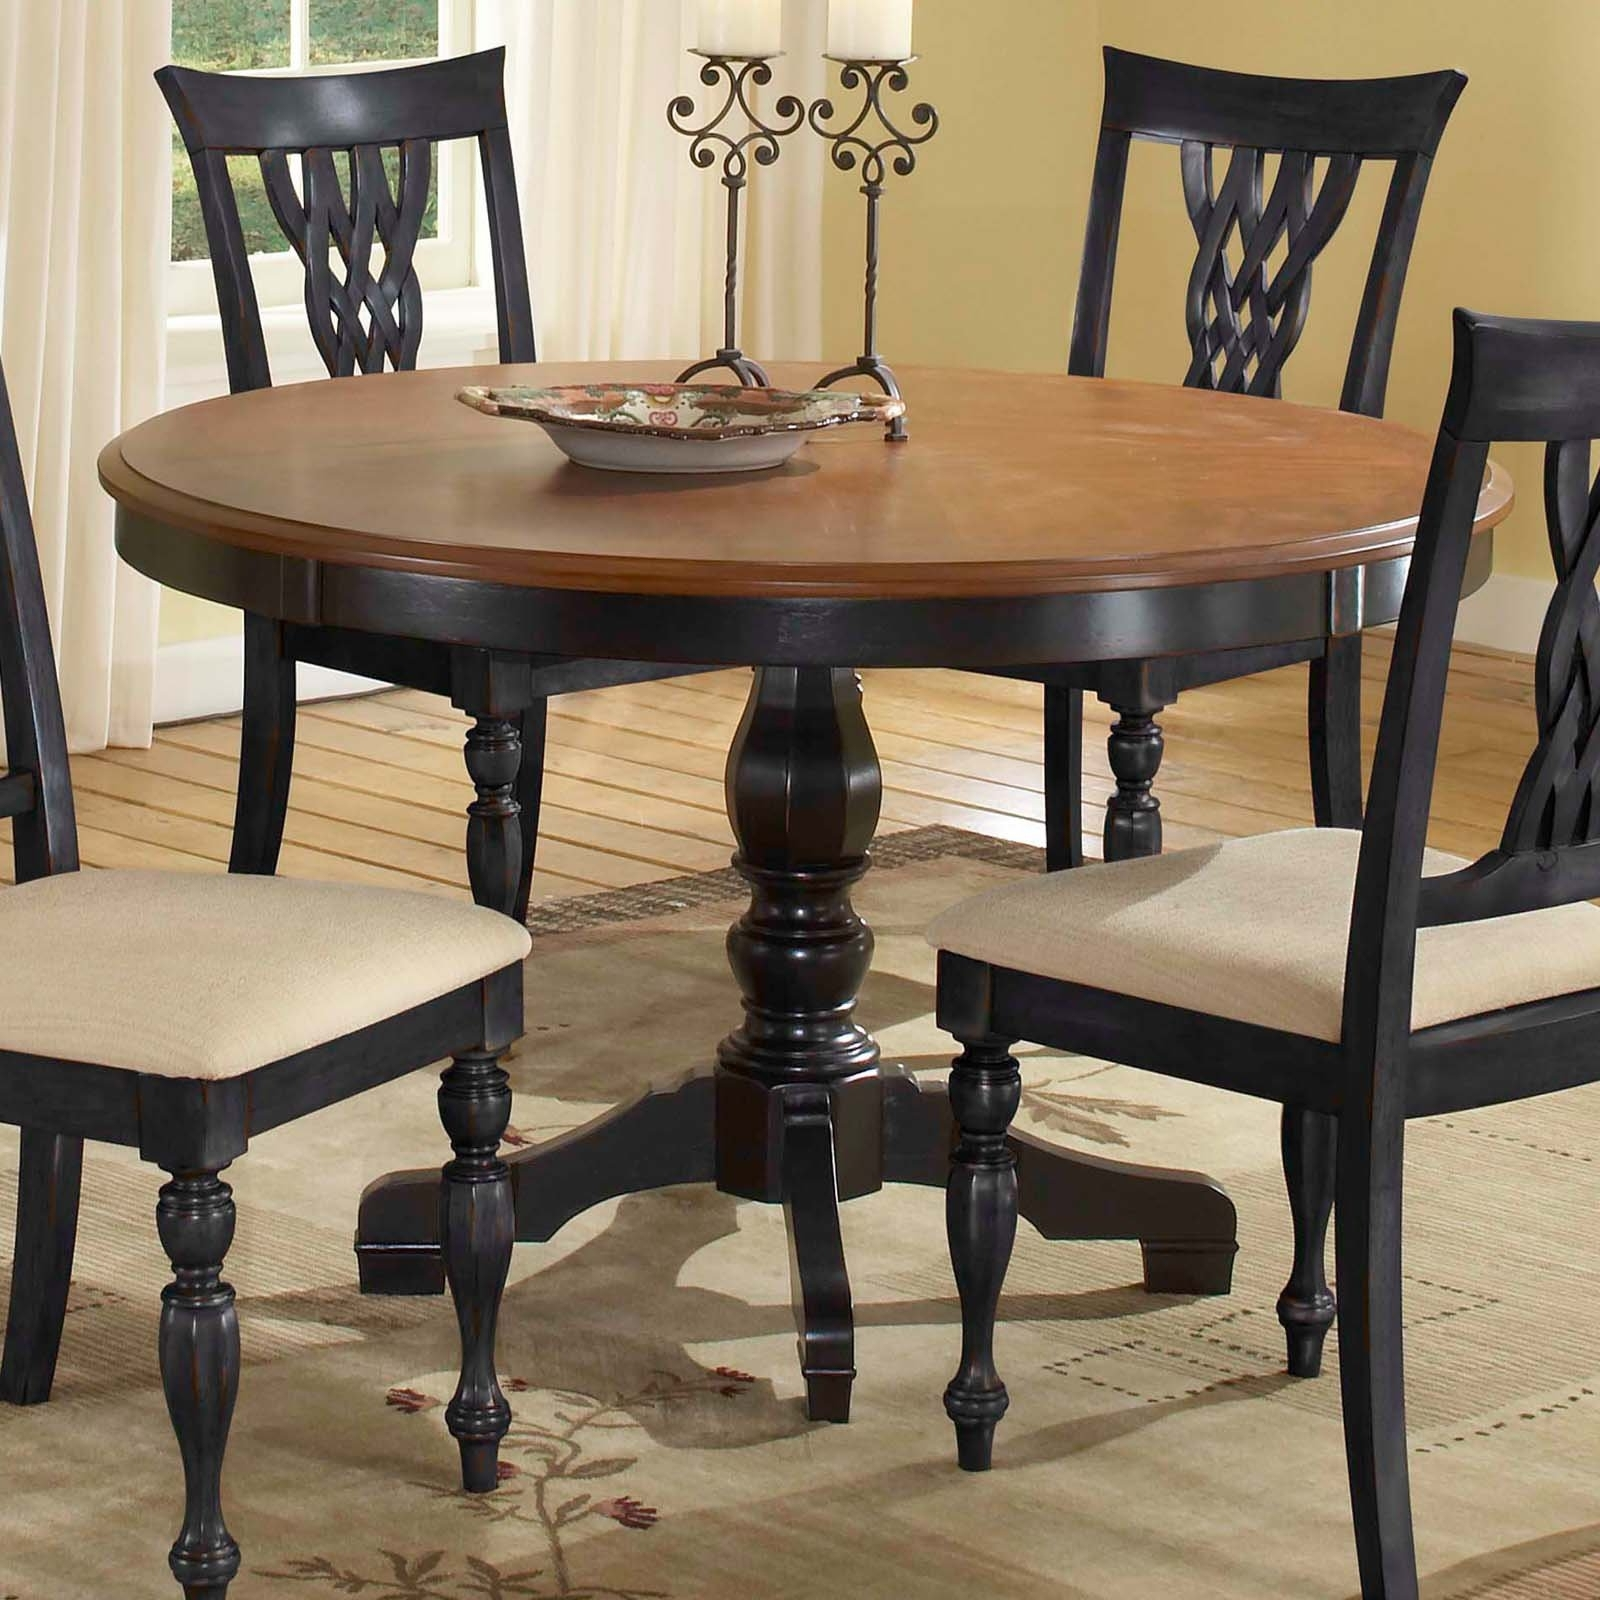 Jaxon Grey Round Extension Dining Tables For Preferred Dining Table Extension : Home Interior Design – Tips Build 48 Round (Gallery 11 of 25)